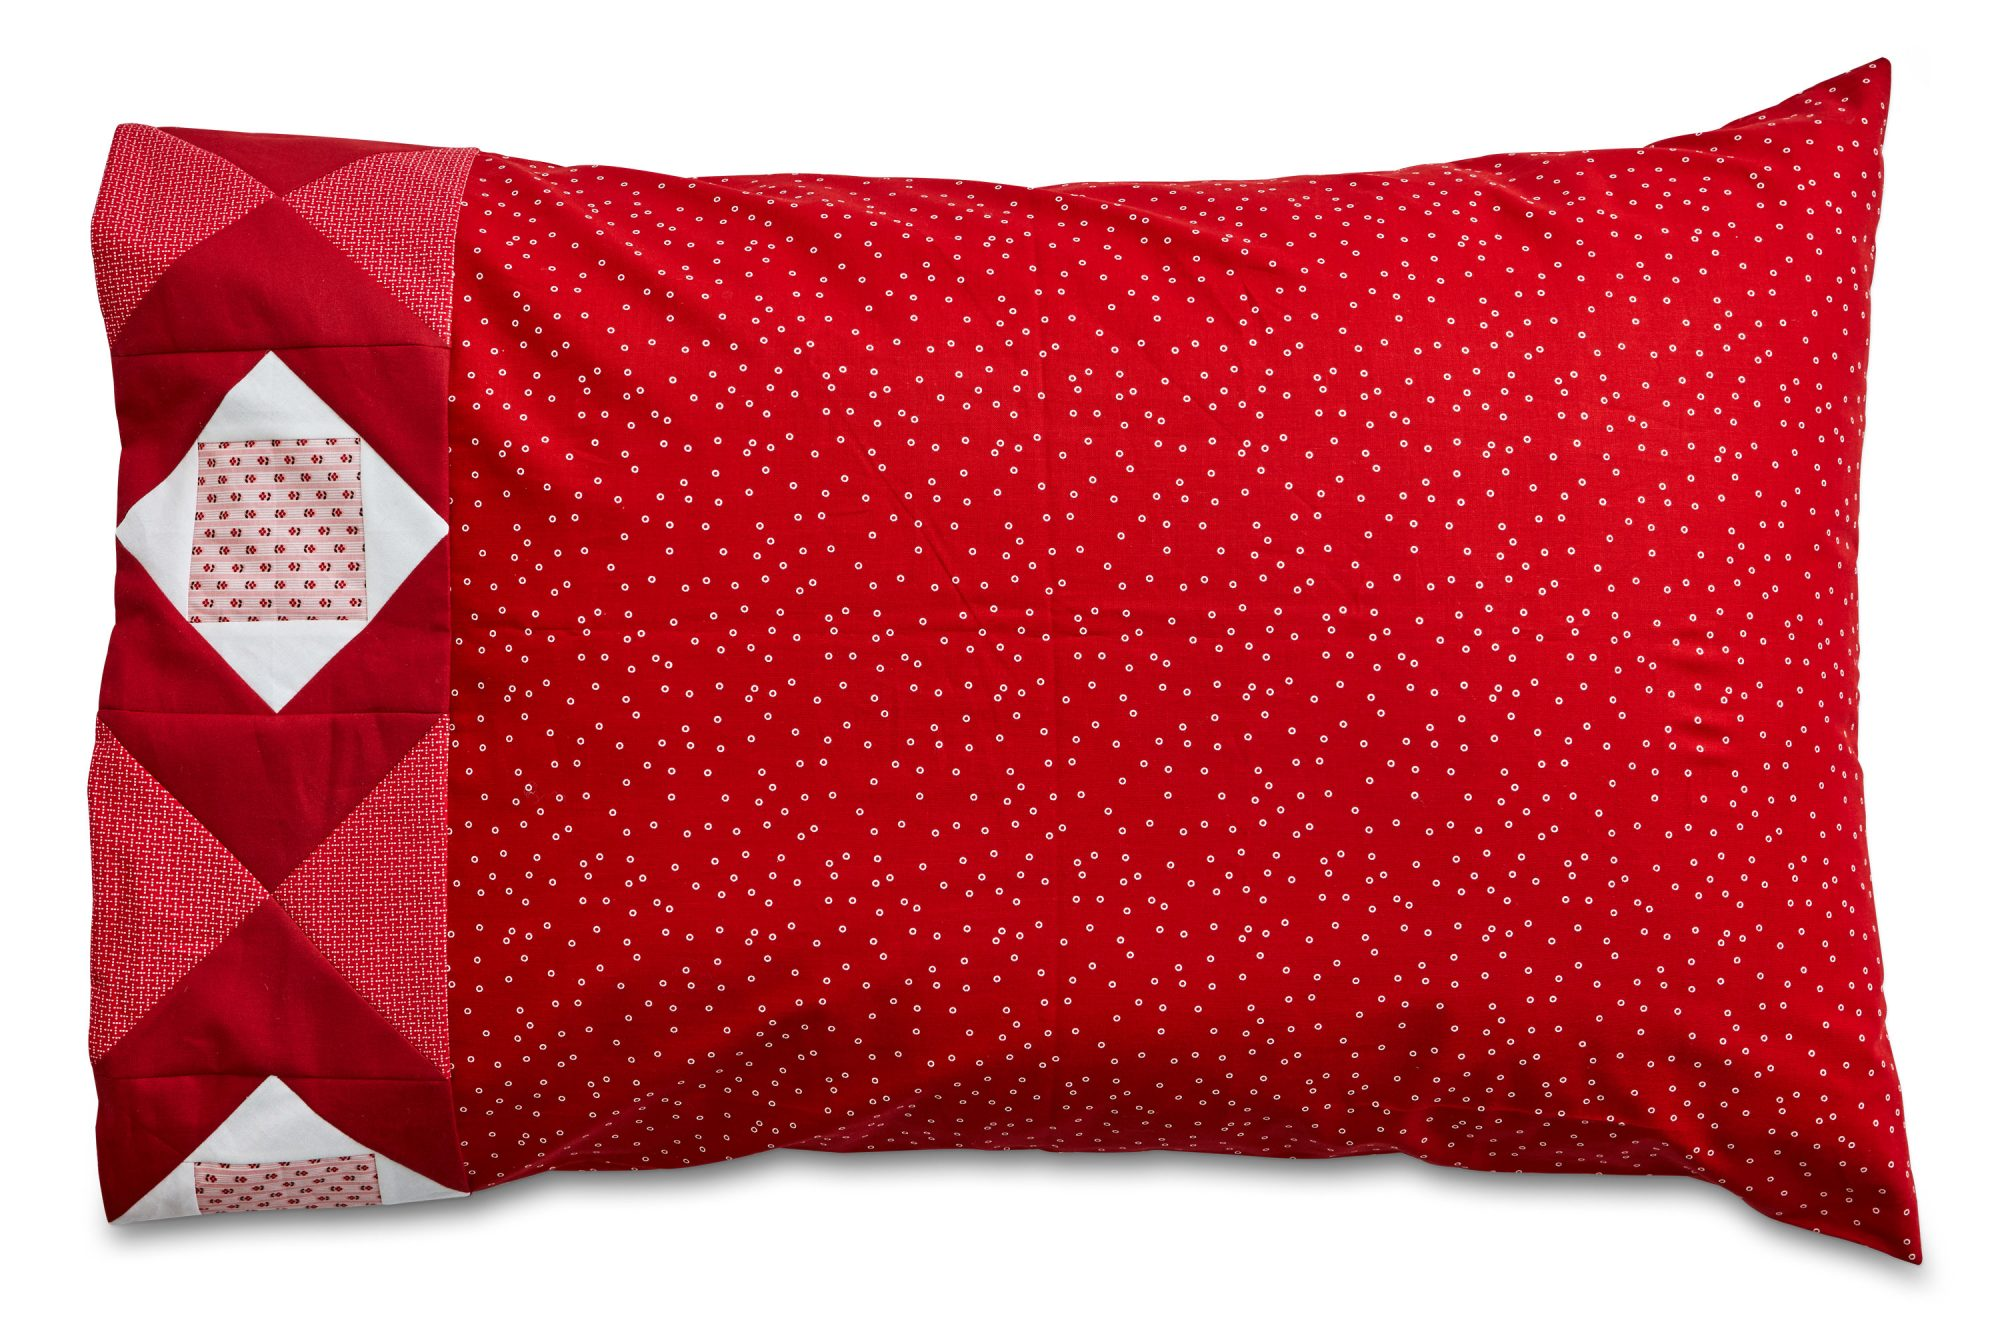 Show the Love Pillowcase